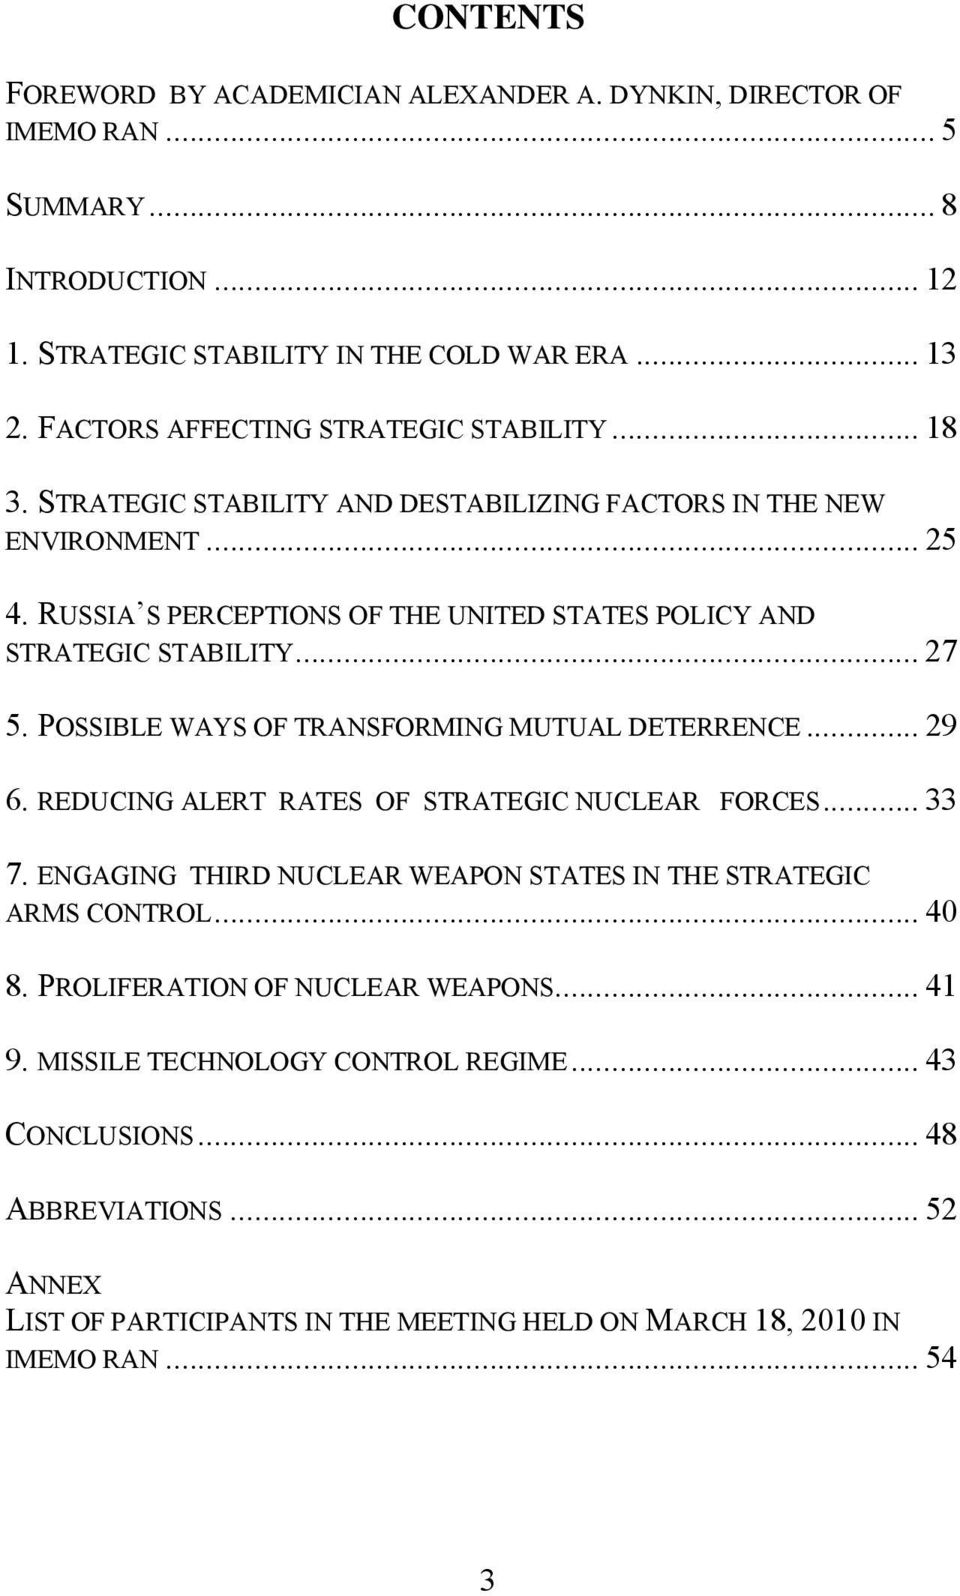 RUSSIA S PERCEPTIONS OF THE UNITED STATES POLICY AND STRATEGIC STABILITY... 27 5. POSSIBLE WAYS OF TRANSFORMING MUTUAL DETERRENCE... 29 6. REDUCING ALERT RATES OF STRATEGIC NUCLEAR FORCES.